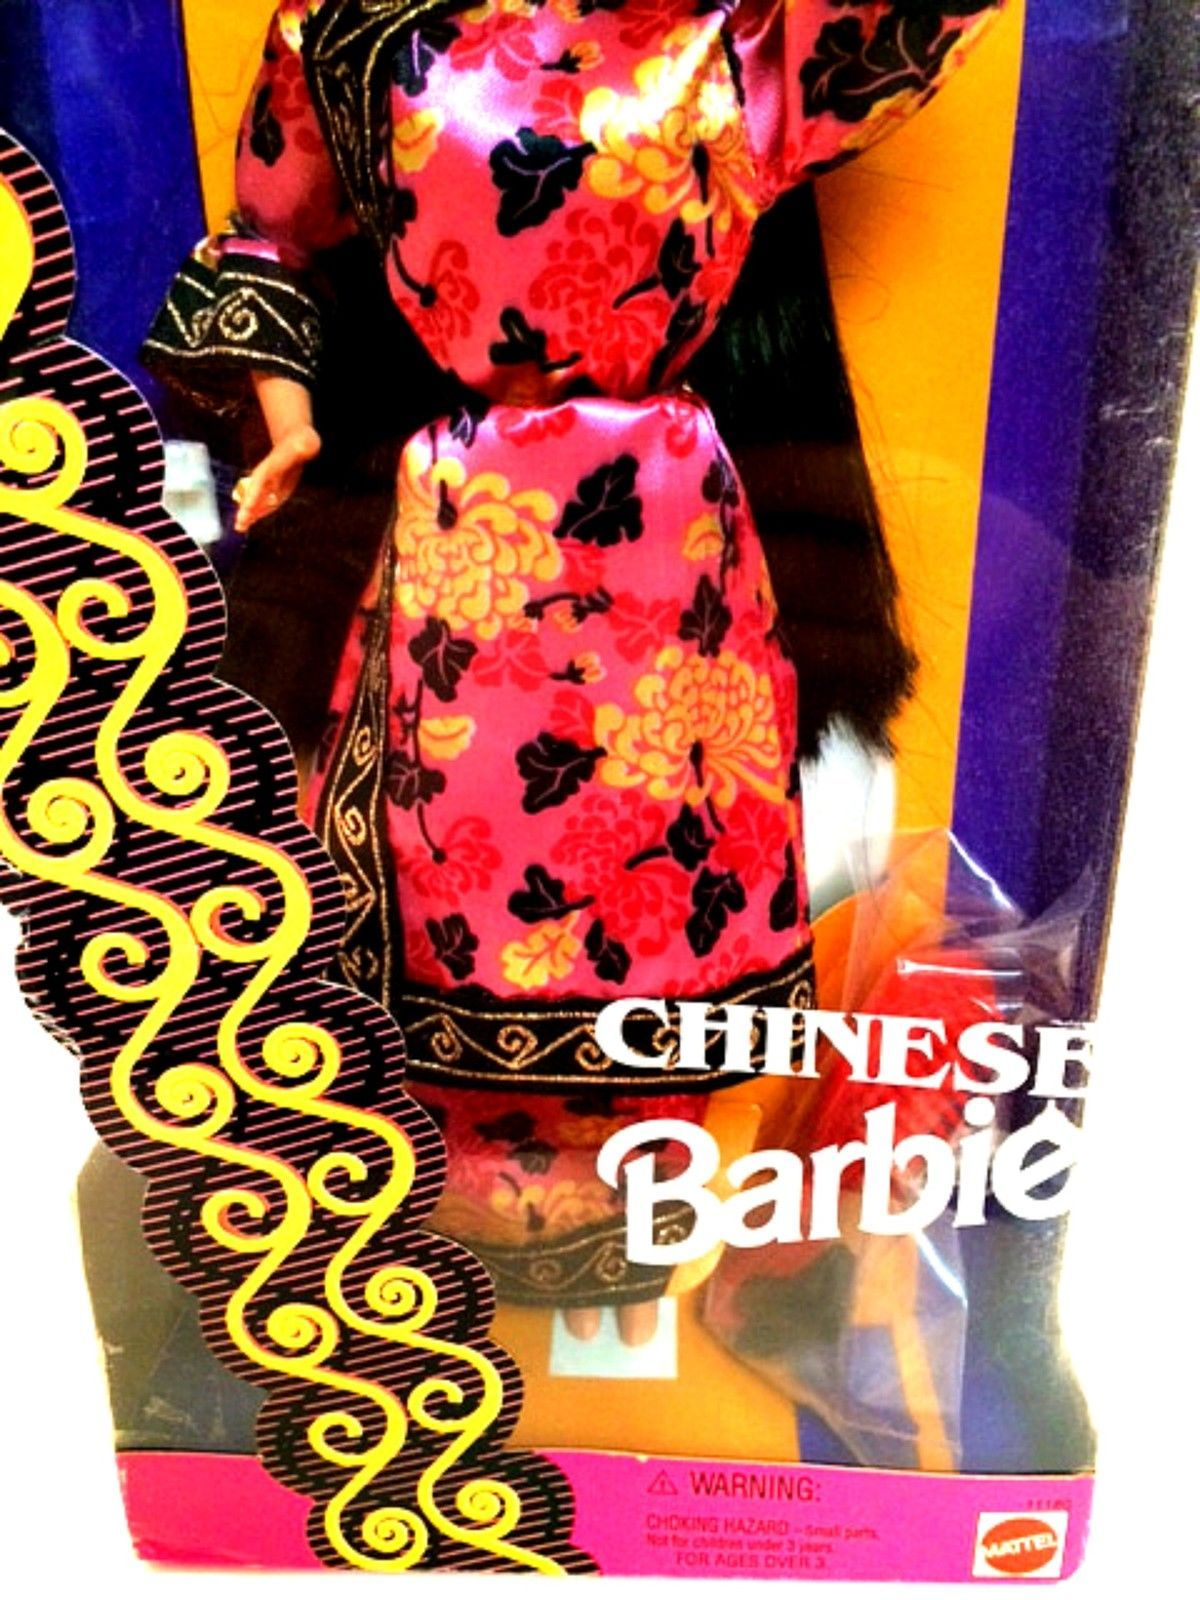 Chinese Barbie Dolls of the World Special Edition Pink Floral Print Costume